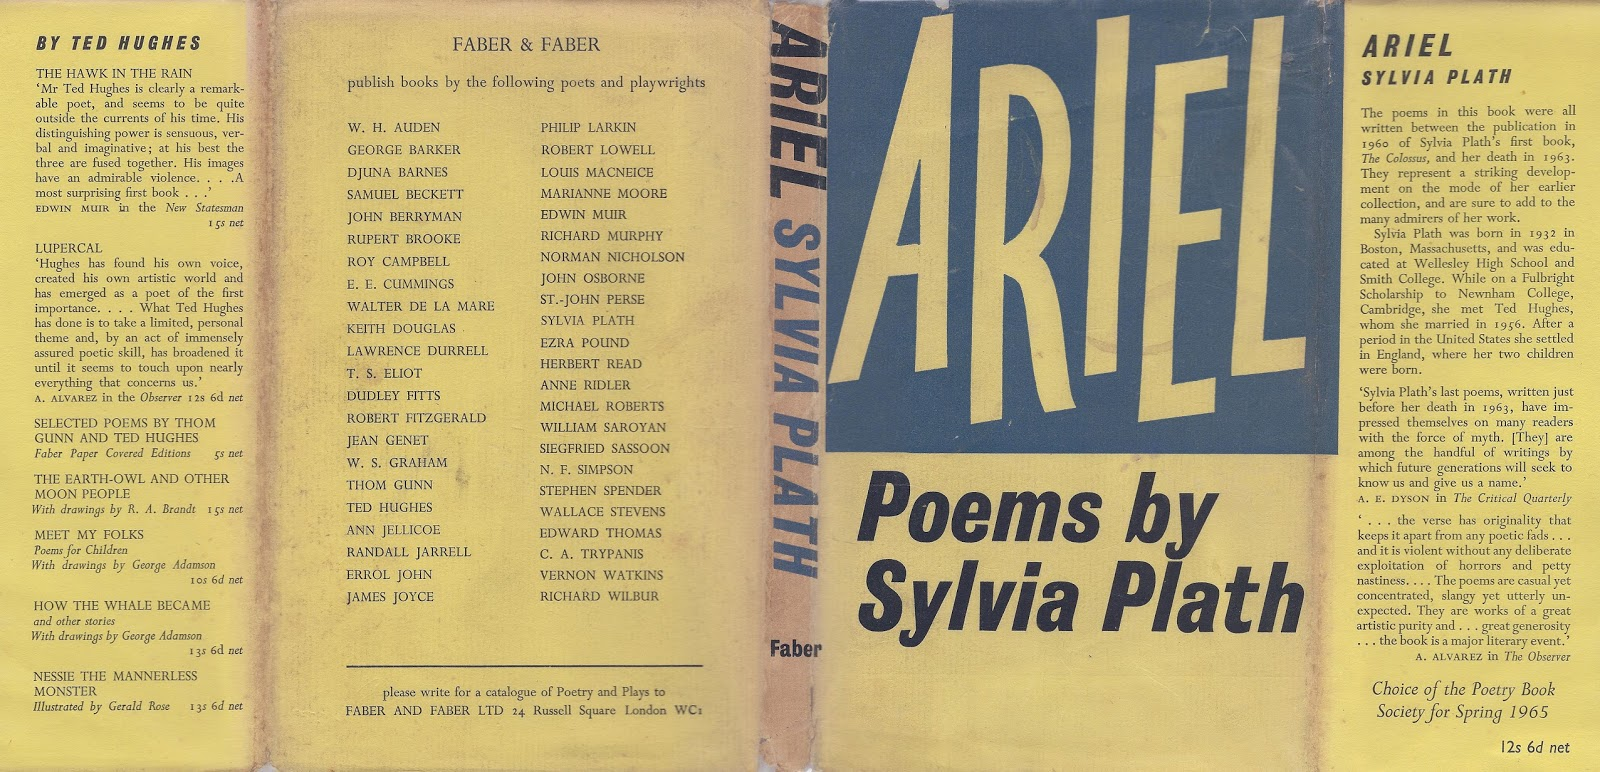 an analysis of in plaster poem written by sylvia plath In plaster was a poem written by sylvia plath on march 18, 1961 the poem was written while plath was in st pancras hospital in england, immediately following an appendectomy her journals, as well as the letters she wrote to her mother, vividly describe the events surrounding the composition of this poem.